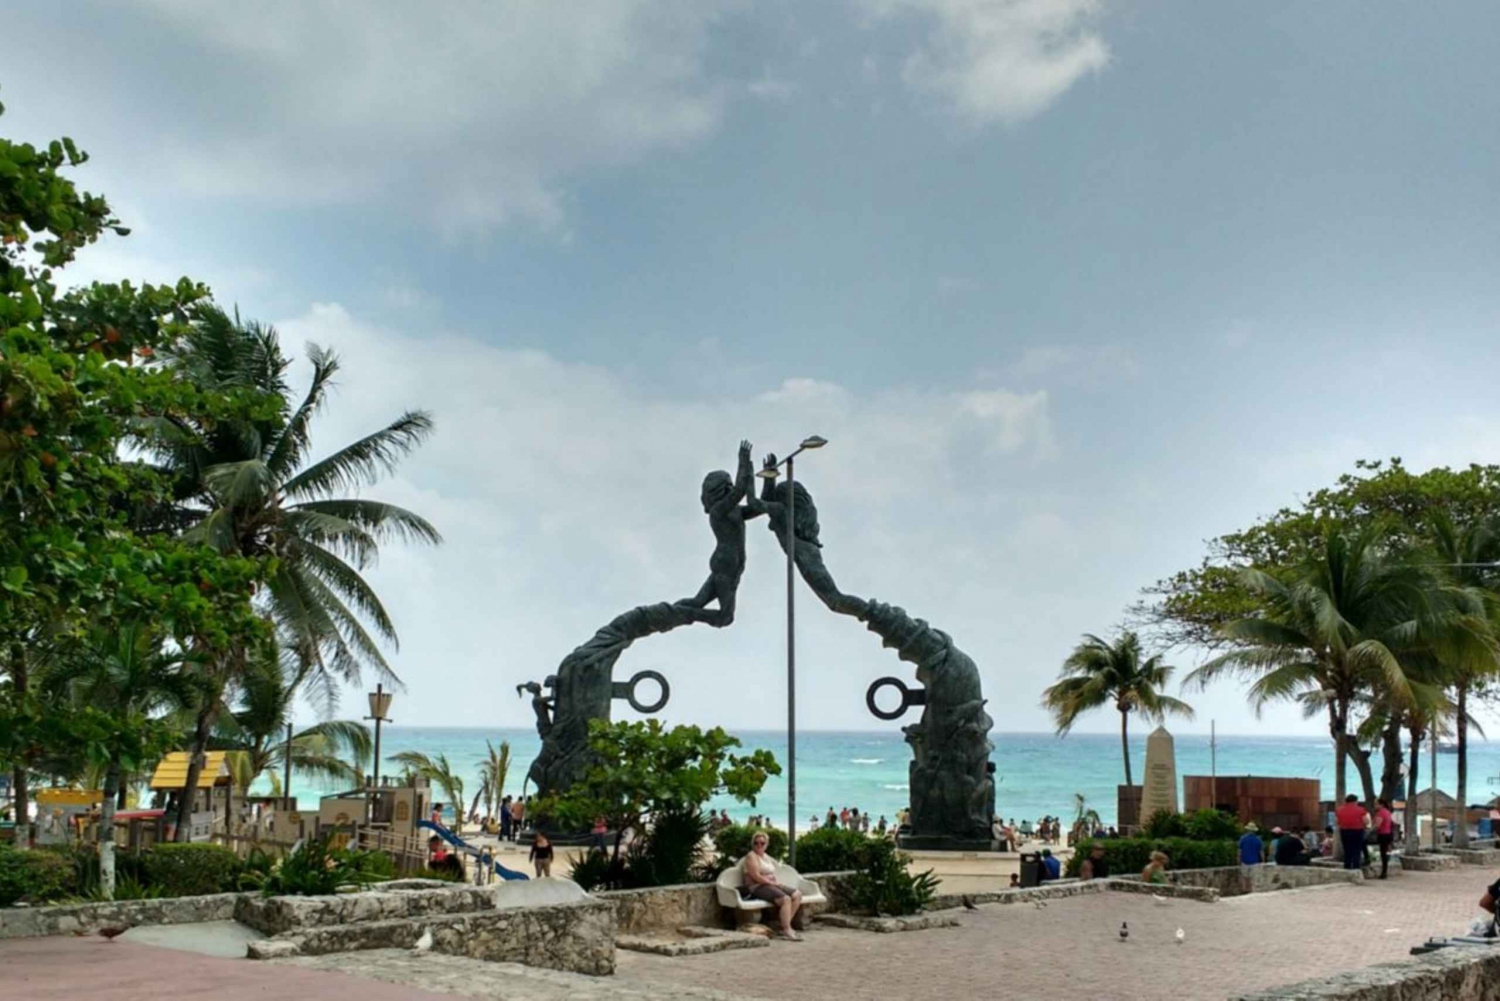 Playa del Carmen Self-Guided 5th Avenue Tour